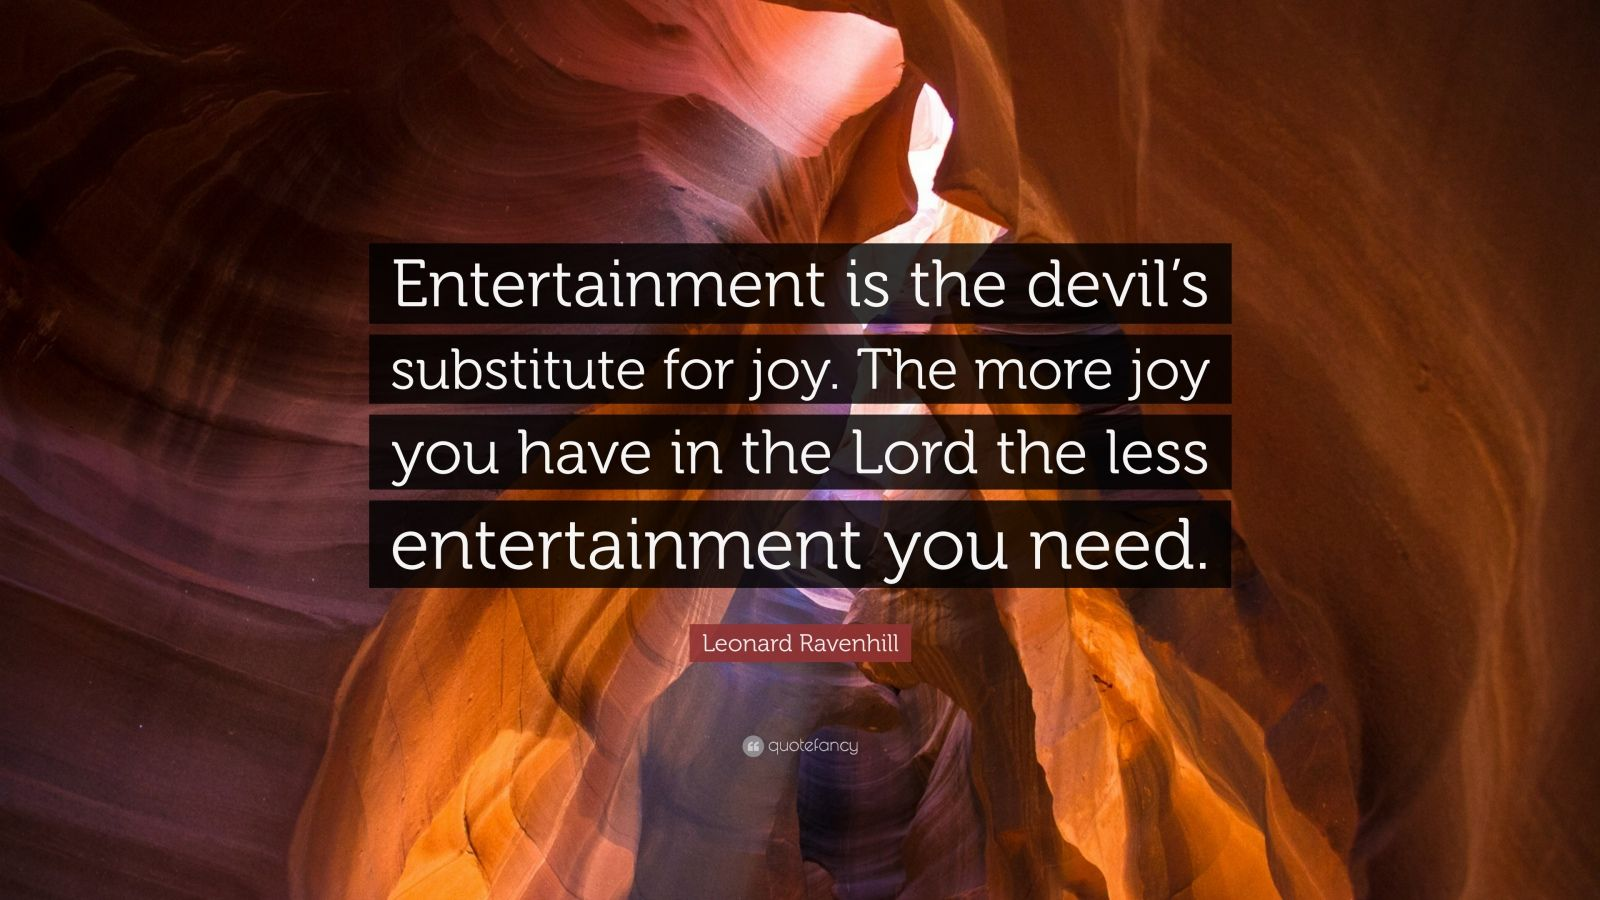 """Leonard Ravenhill Quote: """"Entertainment is the devil's substitute for joy. The more joy you have in the Lord the less entertainment you need."""""""